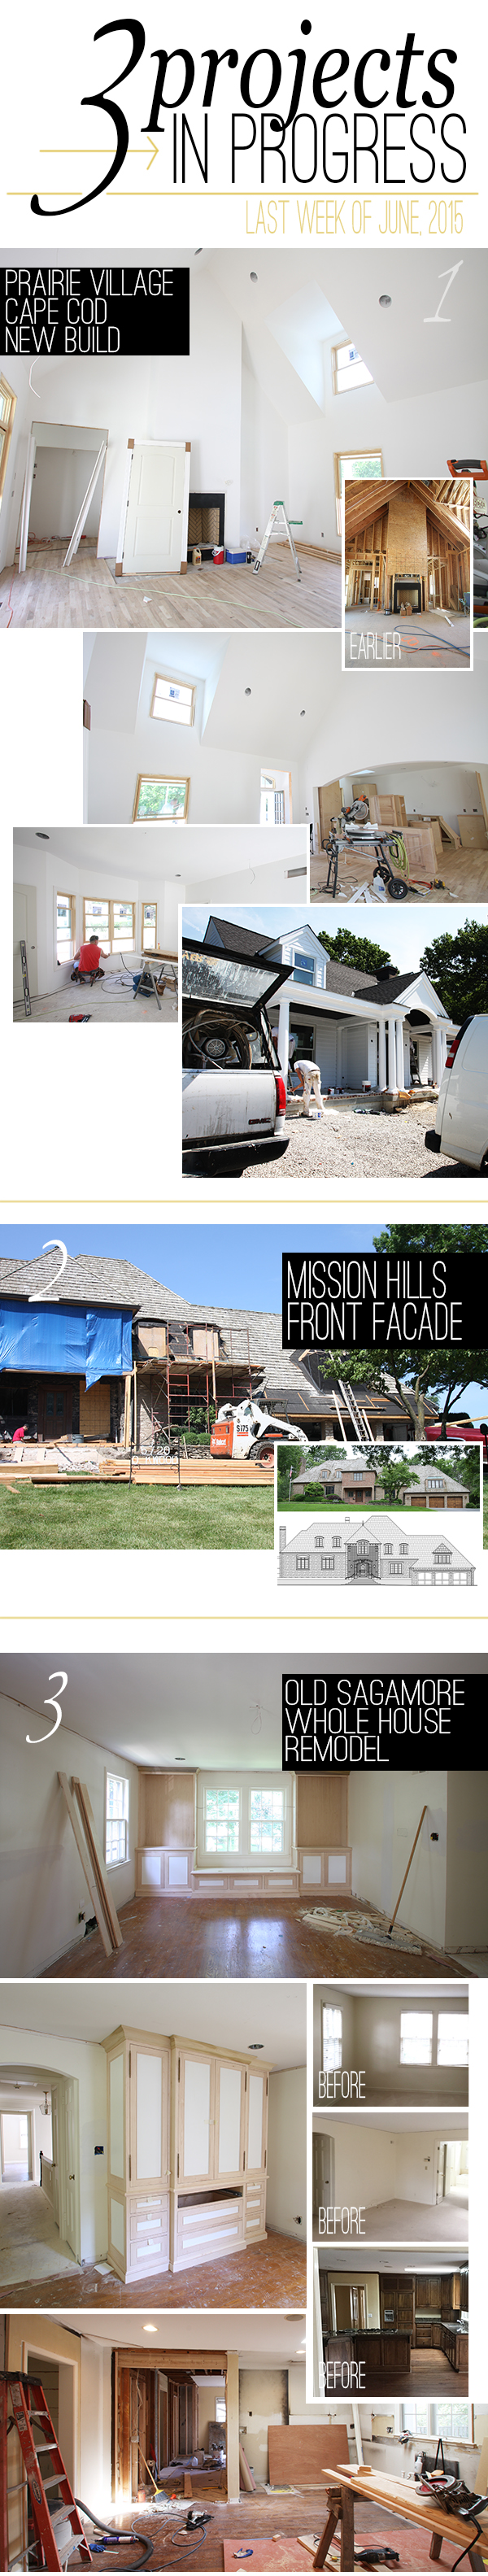 progress pictures on three scovell wolfe projects